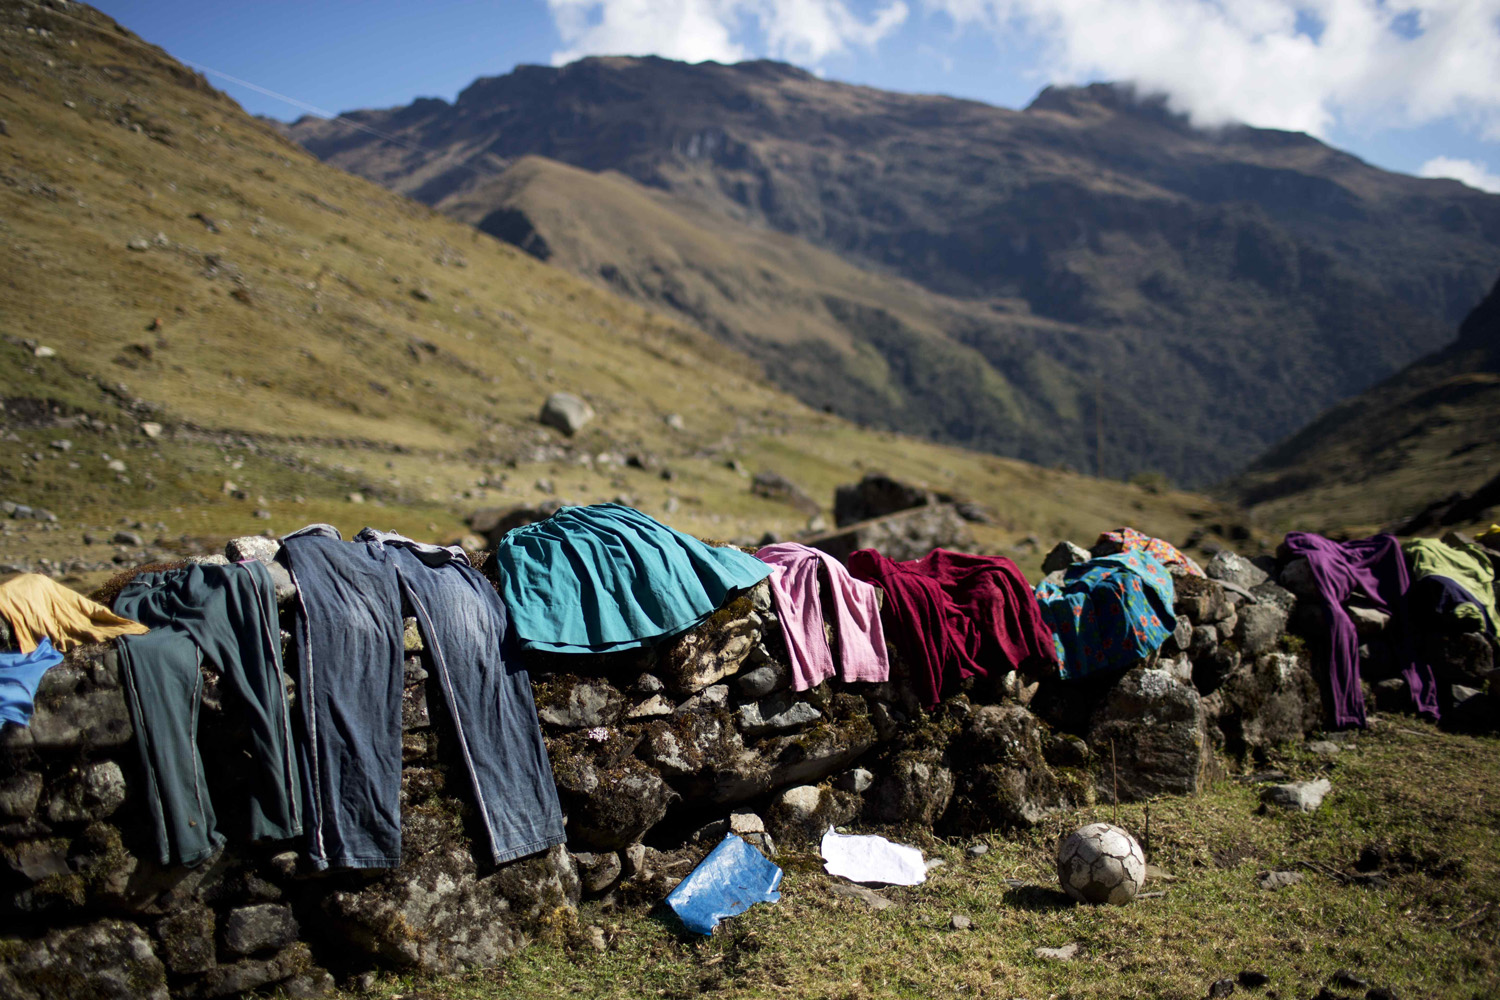 Sept. 2, 2014. Villagers dry their clothes on a stone wall in the mountain village of Chupon, Peru. The village lies in the Peruvian Andes in the province of Ayacucho and houses about 30 peasants that subsist on farming corn and potatoes.